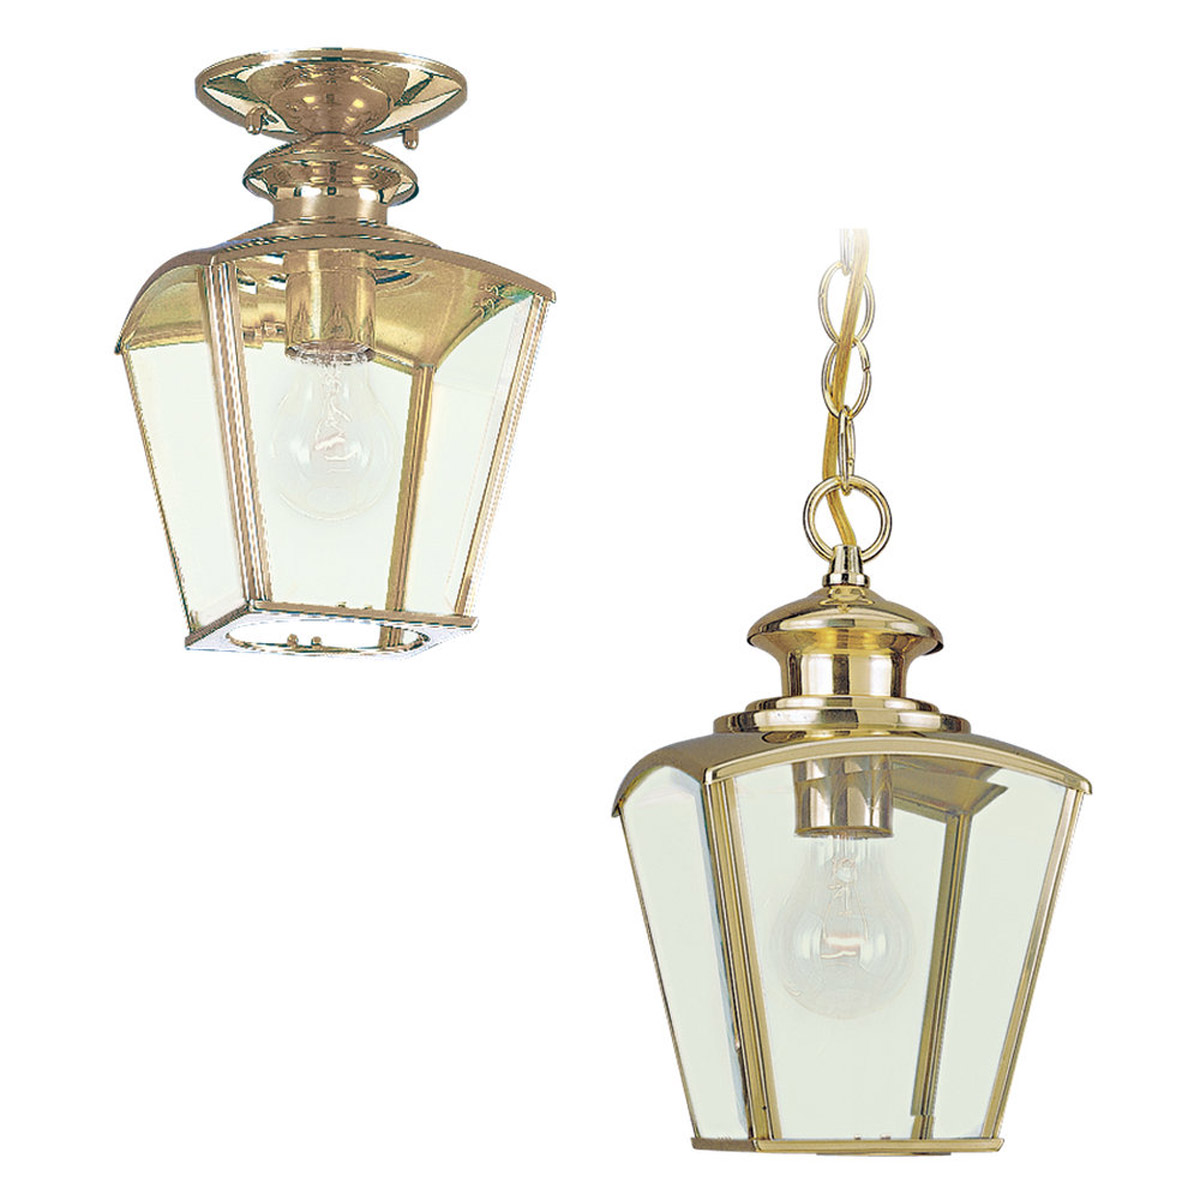 Sea Gull Lighting New Castle 1 Light Outdoor Pendant in Polished Brass 6023-02